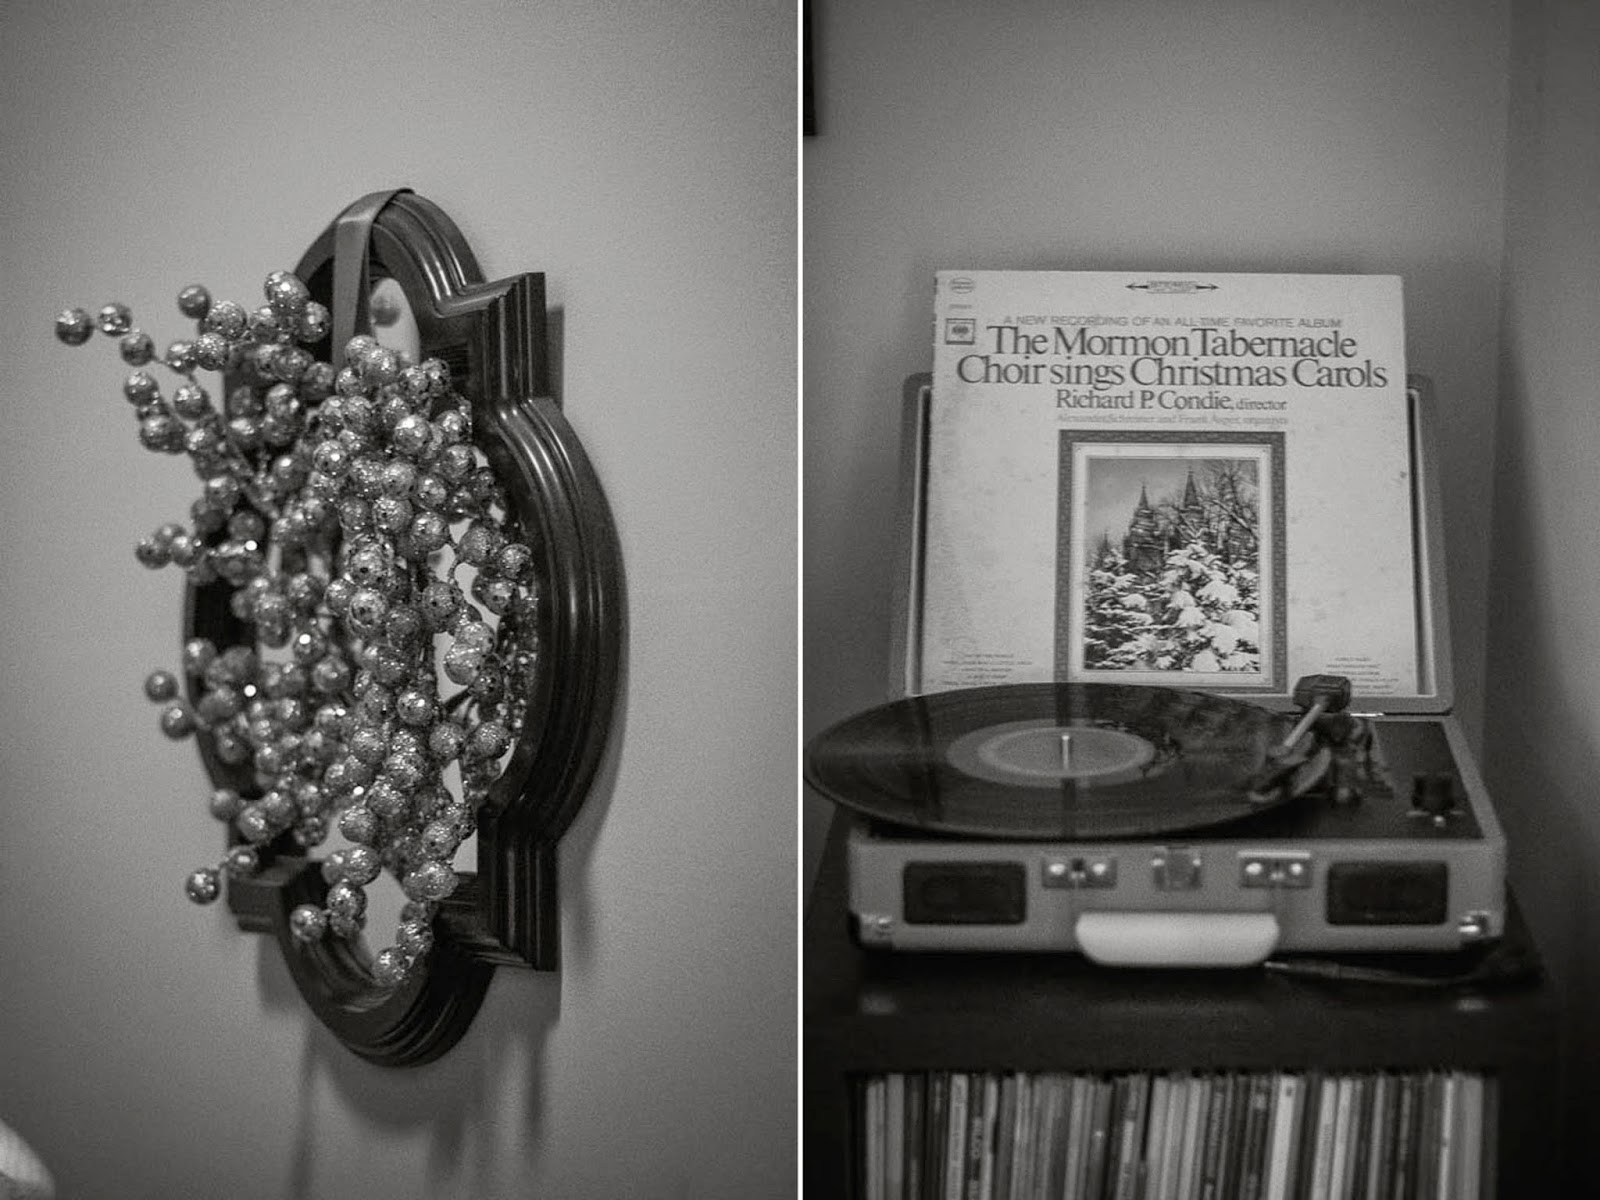 apartment Christmas decorations record player